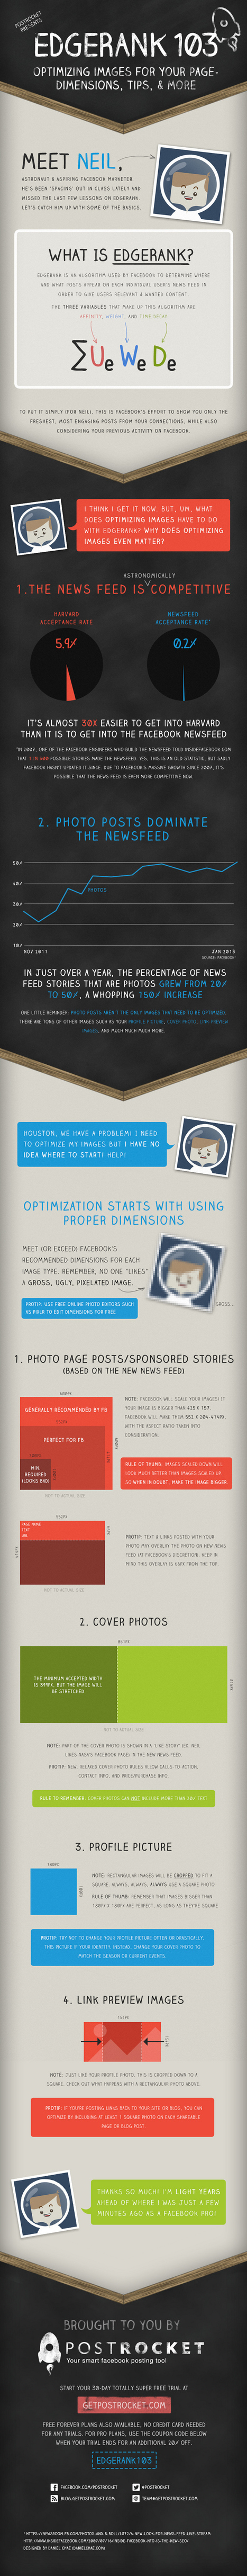 Infographic: Best Practices for Optimizing Facebook Photos | Digital Brand Marketing | Scoop.it